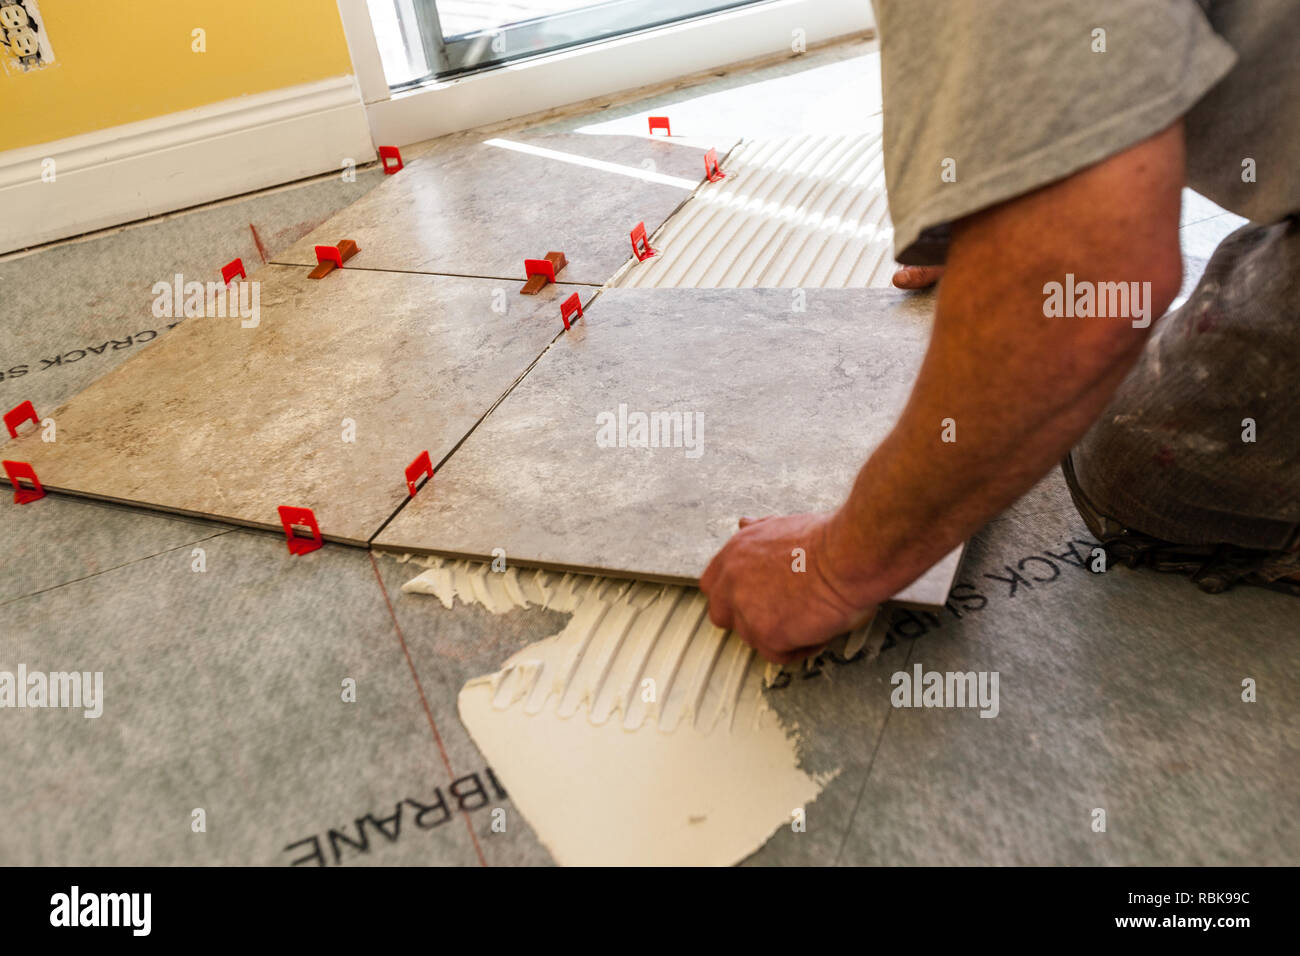 Man Laying Piece Of Square Tile On Adhesive - Stock Image